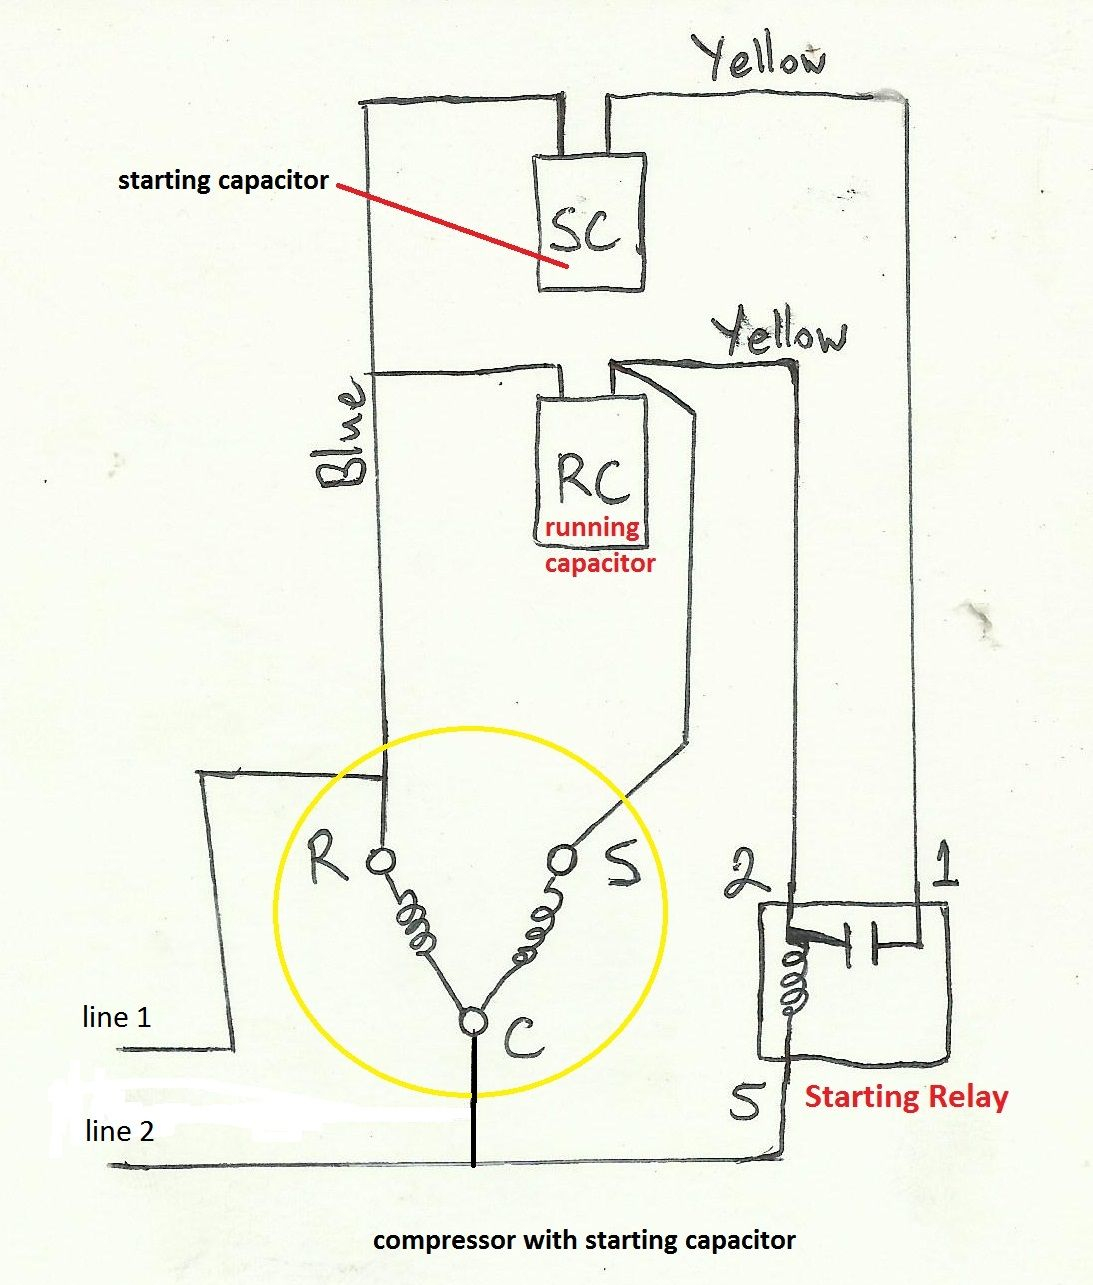 baldor high efficiency wiring diagram find image into this blog